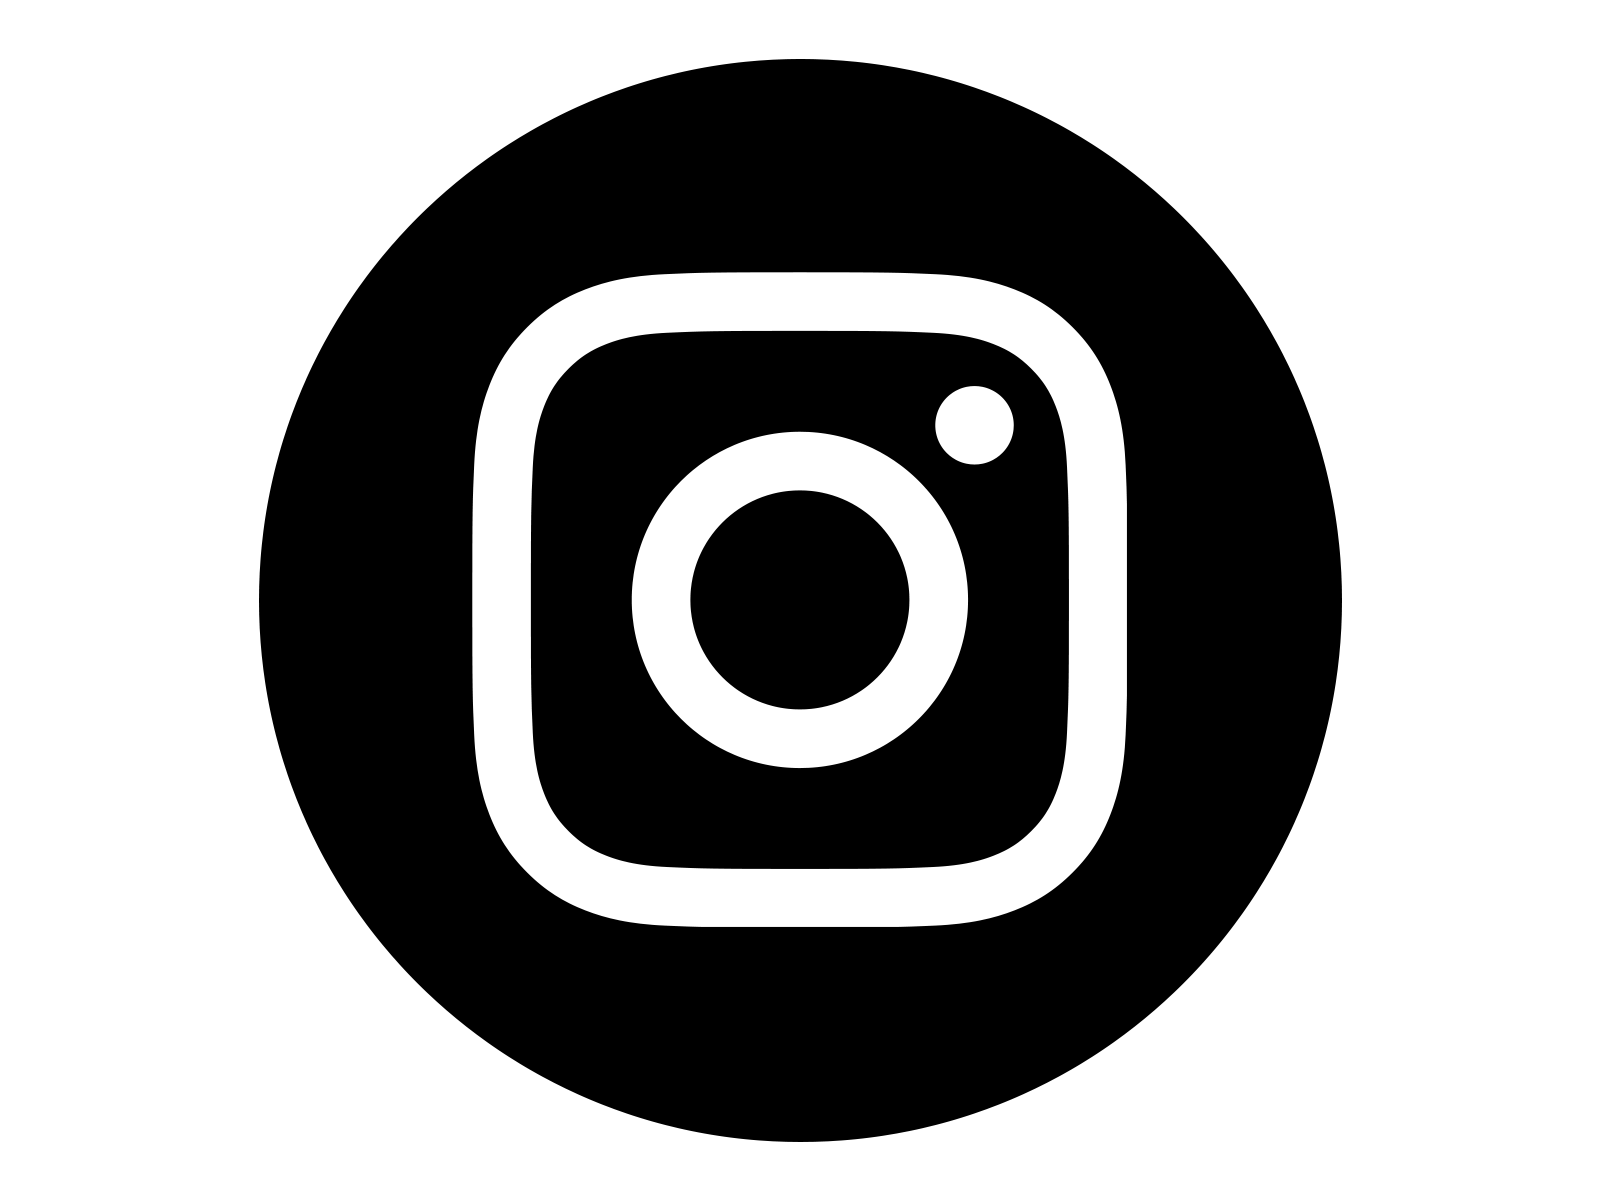 Instagram Icon White on Black Circle | Instagram logo transparent, New instagram logo, Instagram logo